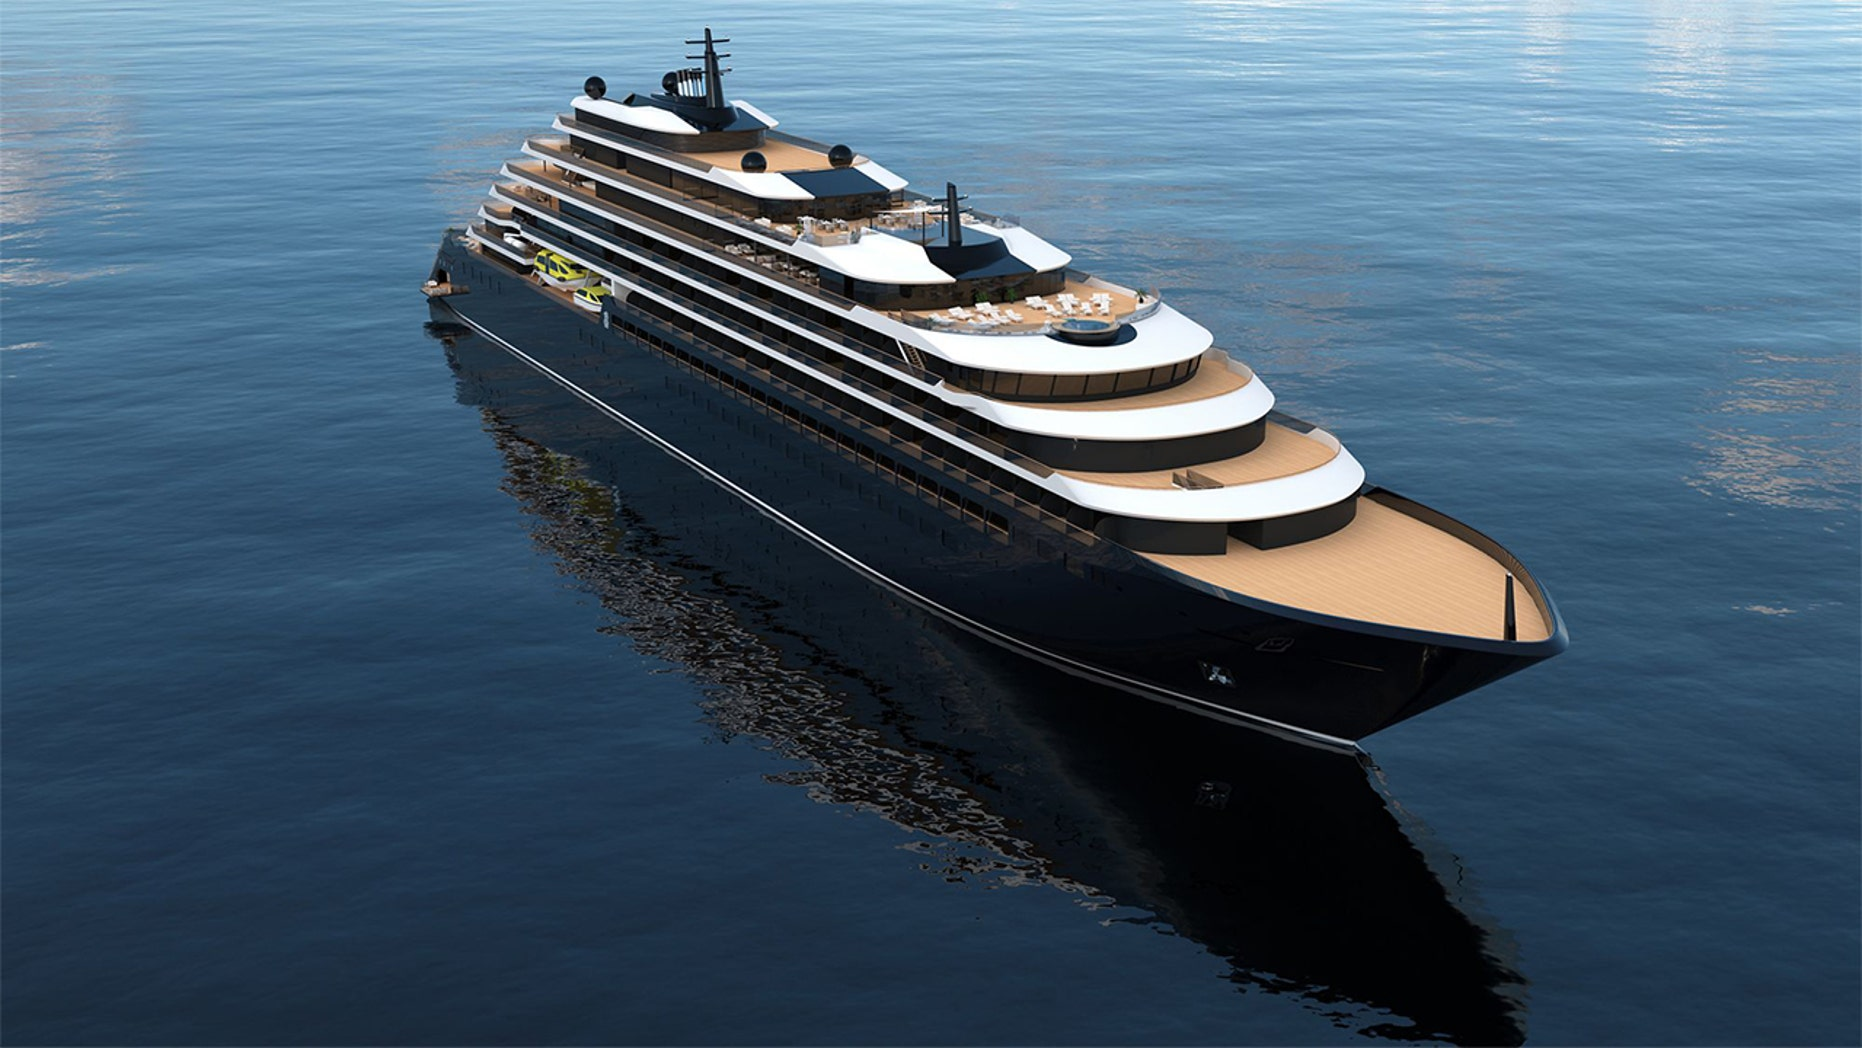 The Ritz-Carlton is launching a luxury cruise line with yacht-style ships.